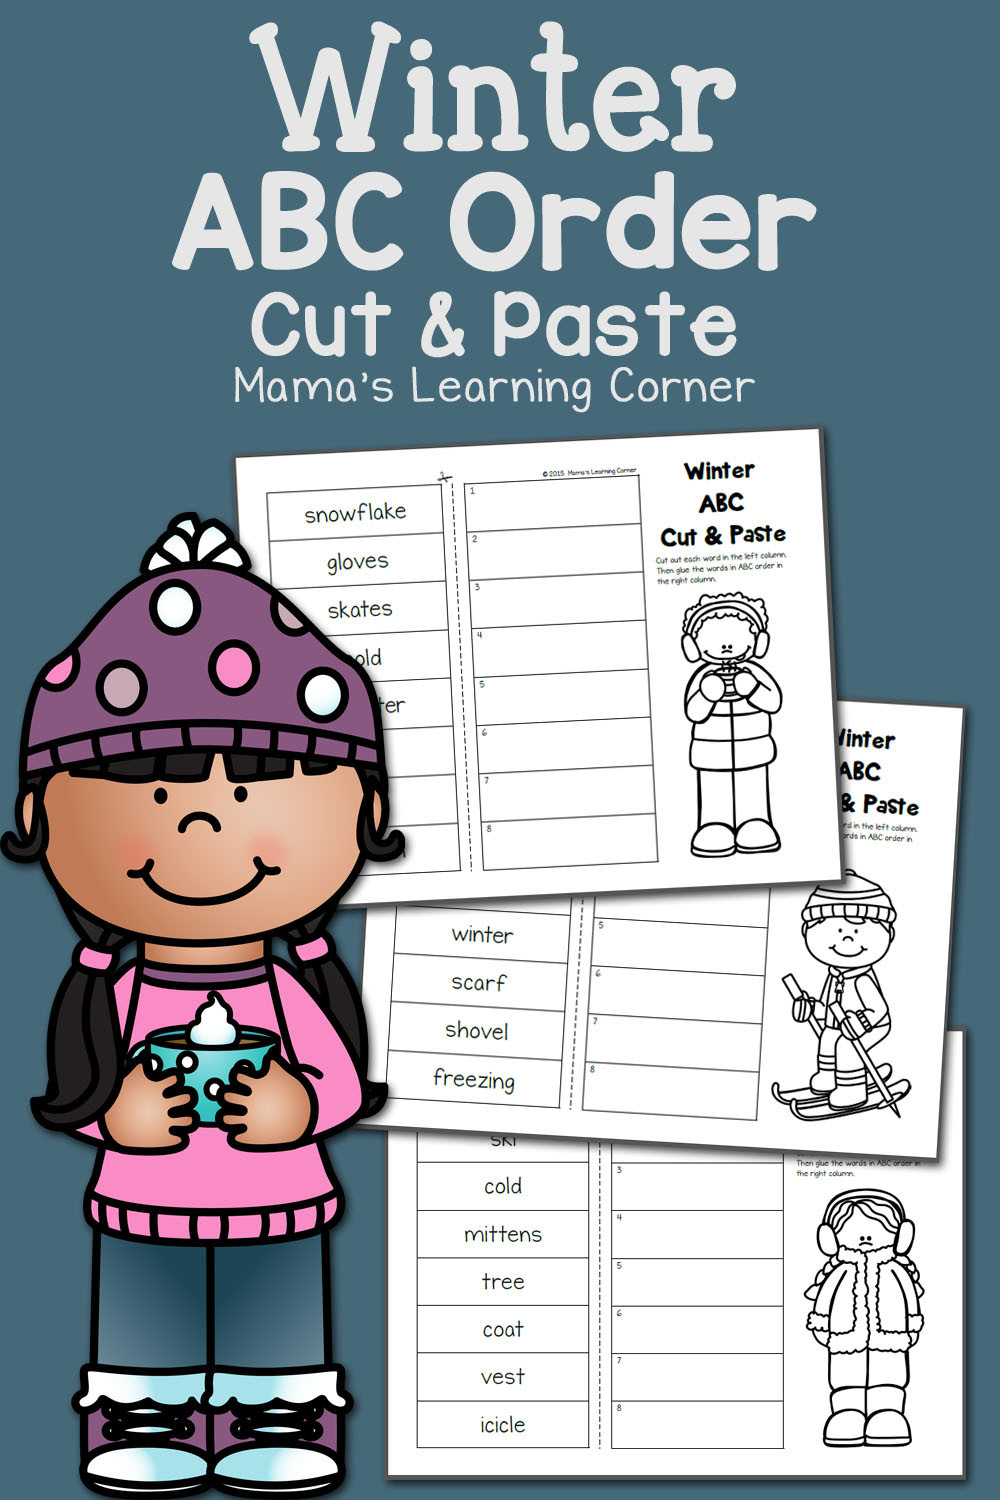 Free Printable Alphabetical order Worksheets Winter Cut and Paste Abc order Mamas Learning Corner